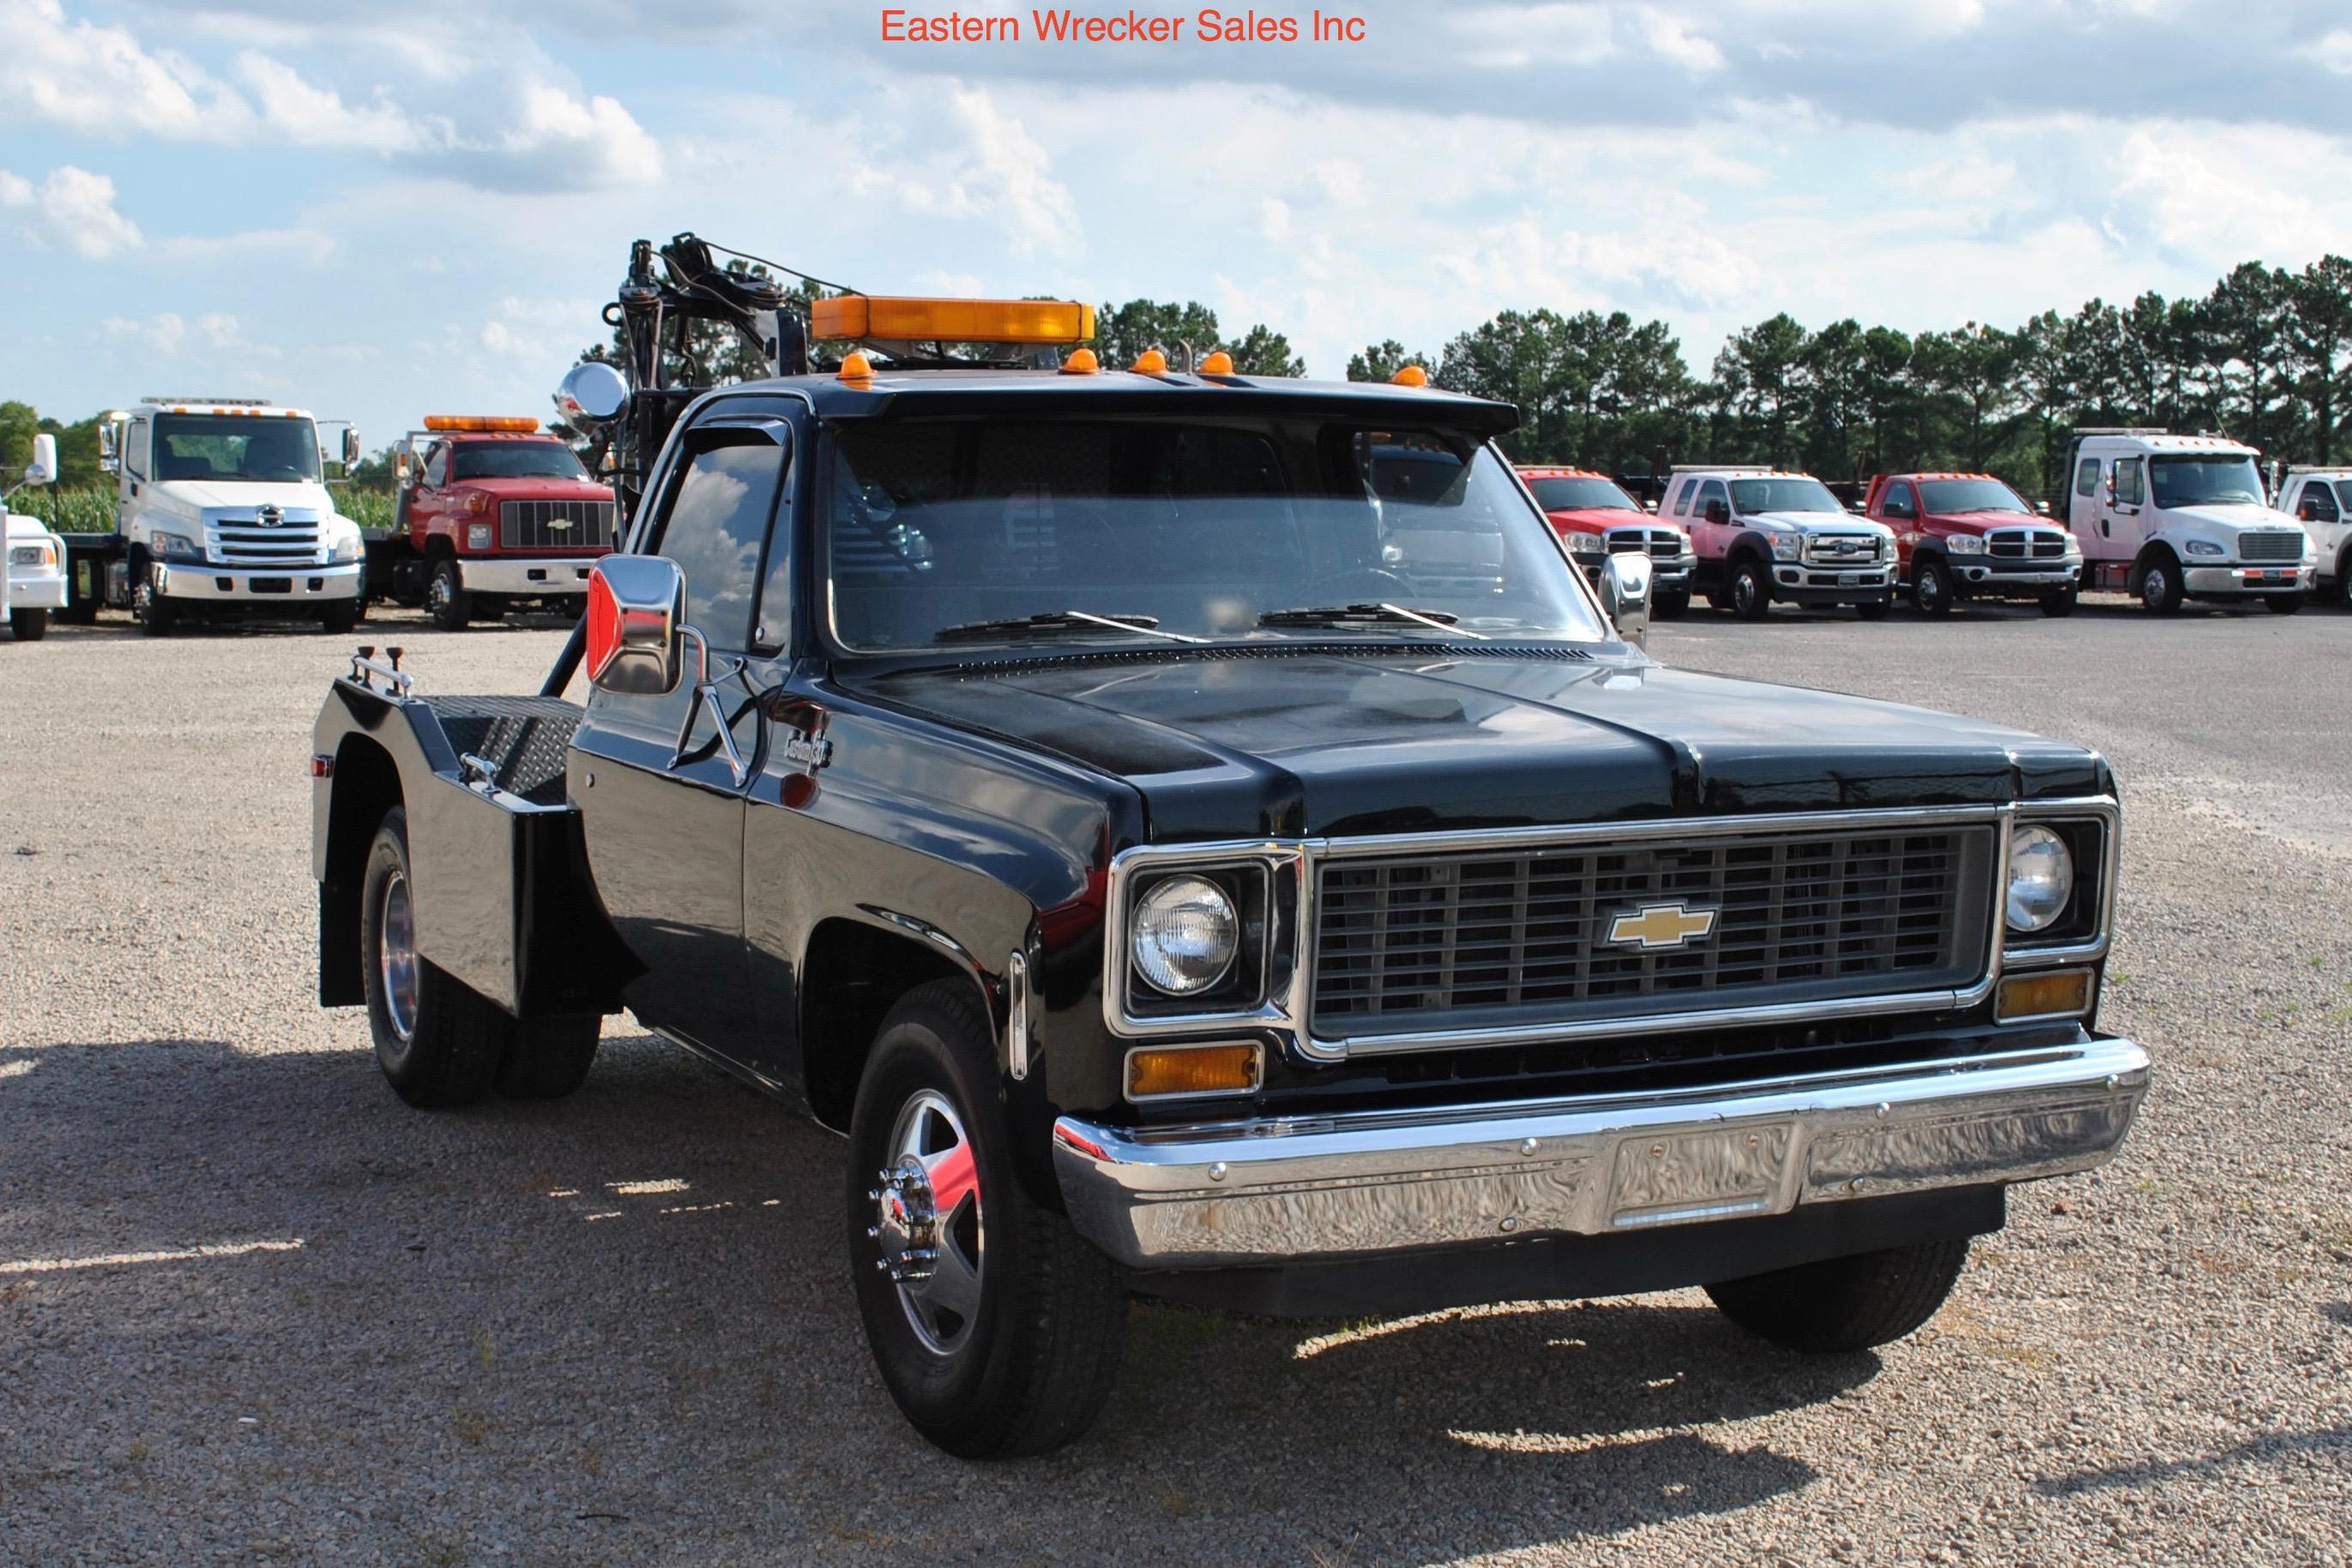 1974 chevrolet c30 with holmes 480 collector 39 s item eastern wrecker sales inc. Black Bedroom Furniture Sets. Home Design Ideas